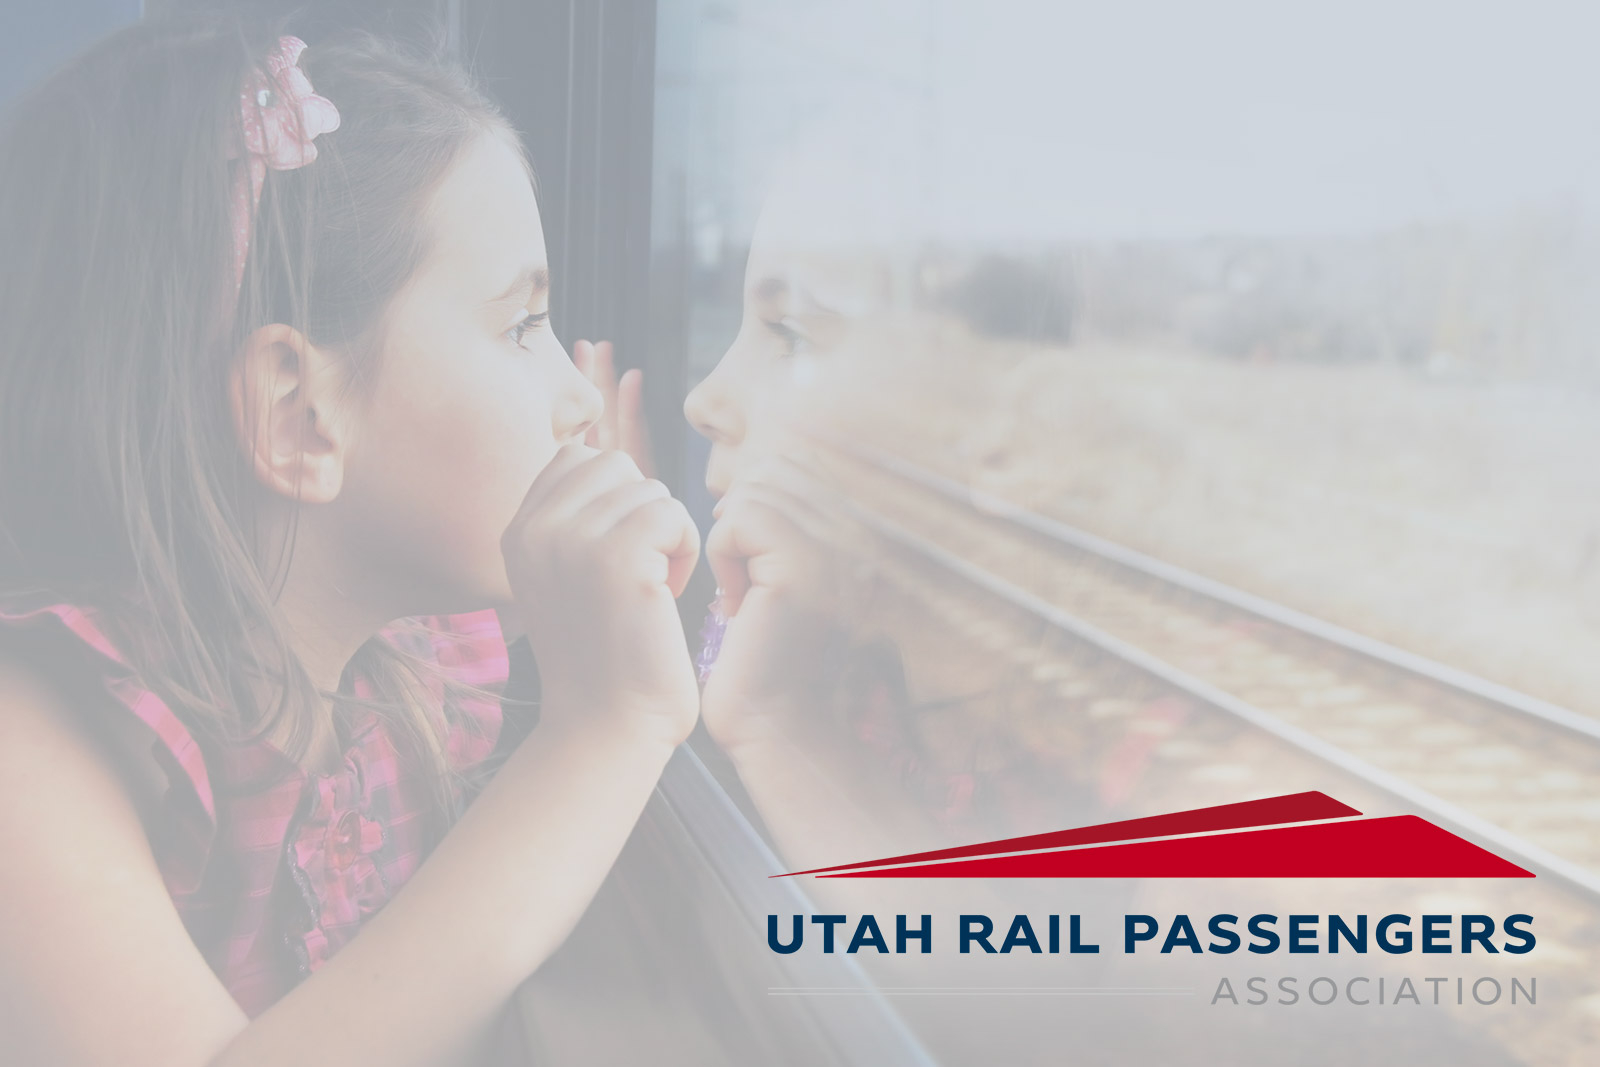 Utah Rail Passenger Association